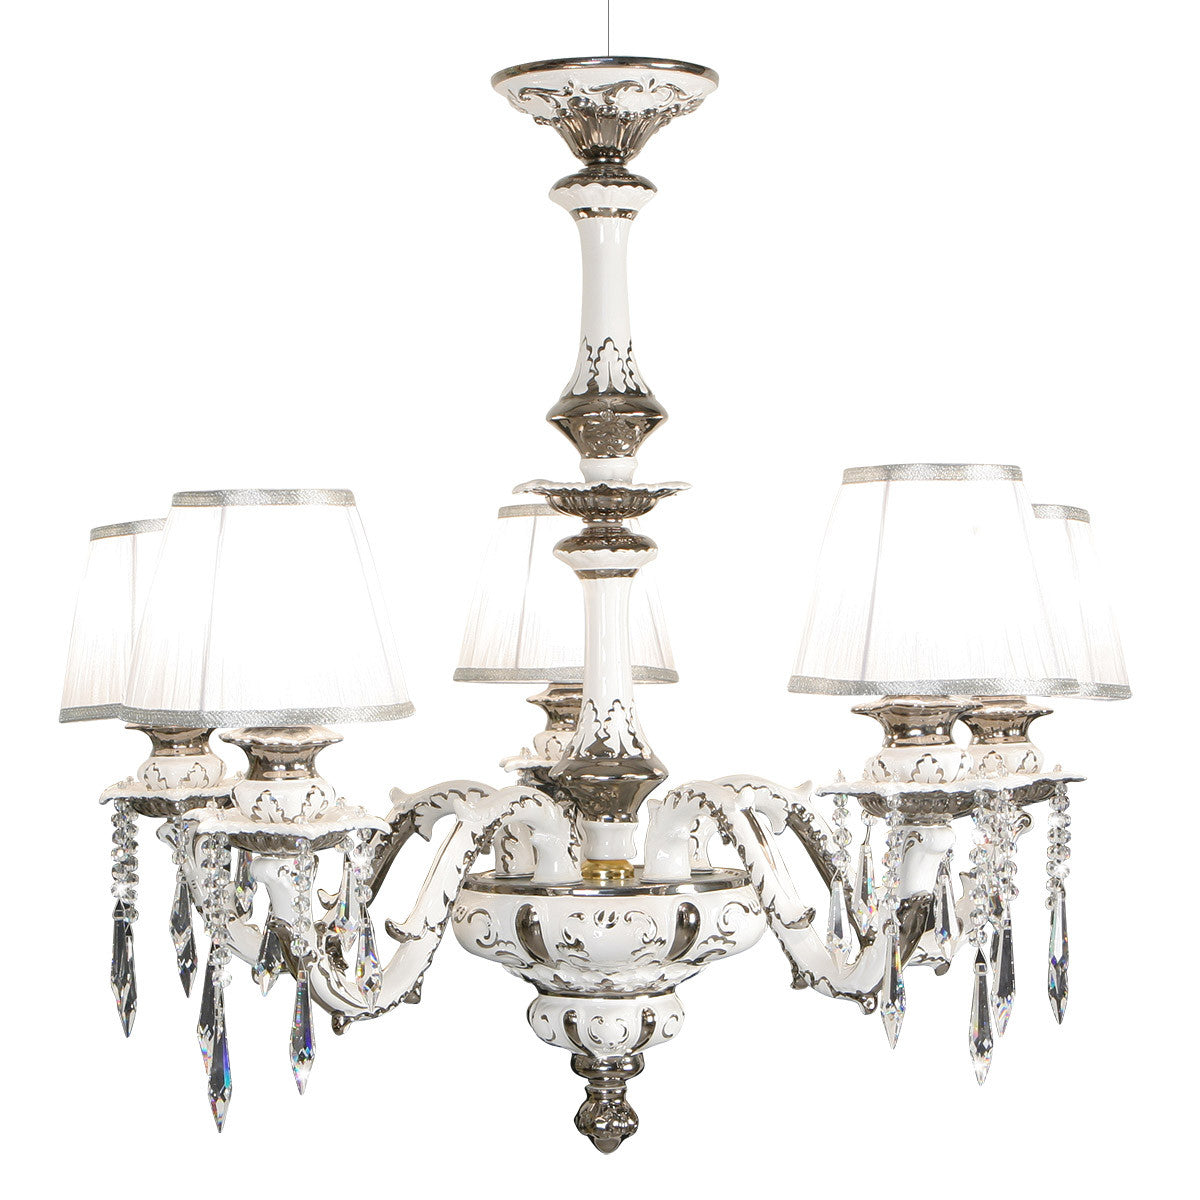 large chandeliers-Entryway chandelier-Home lighting